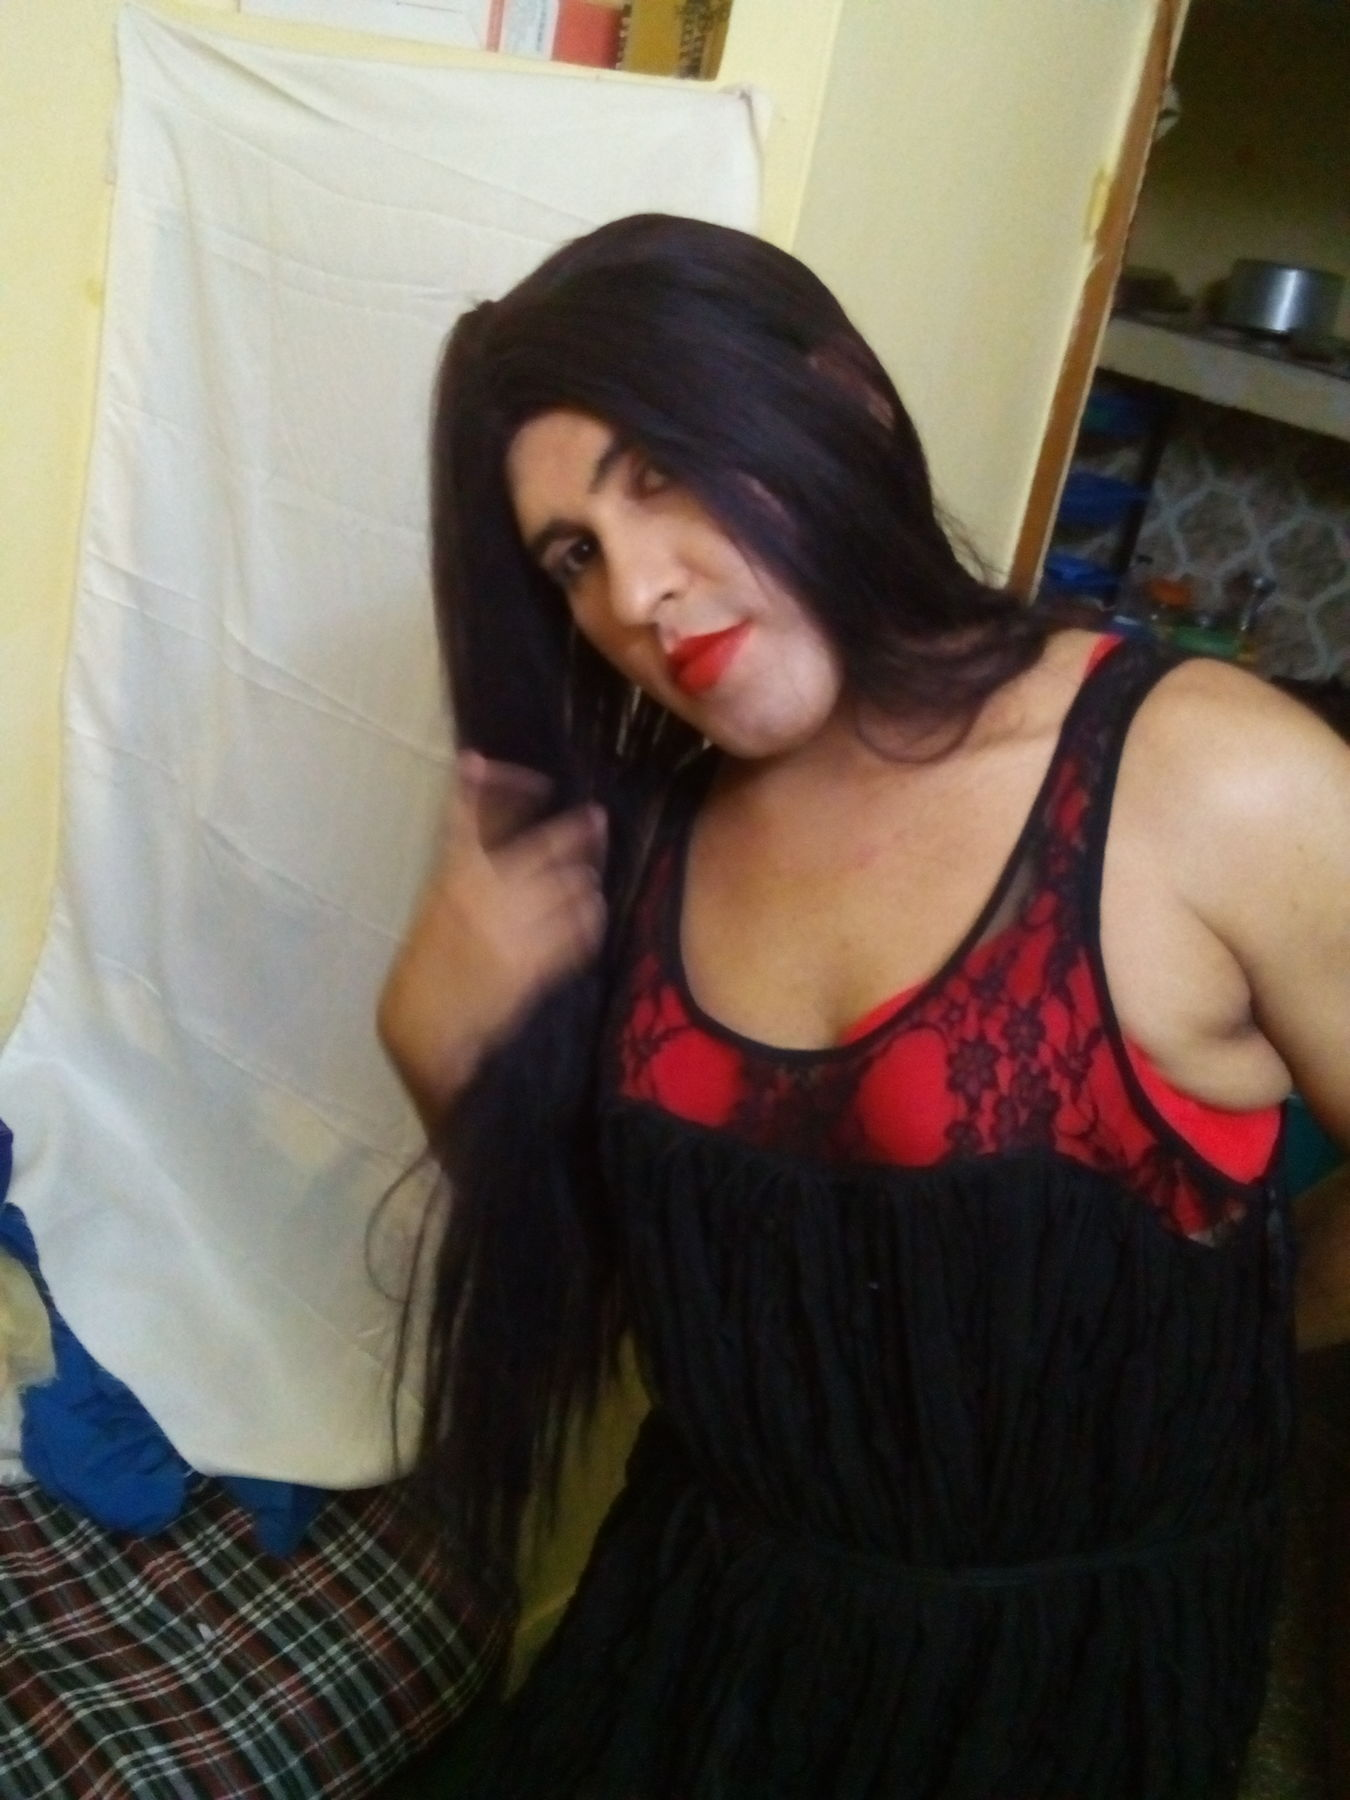 shemale anal sex escort guid